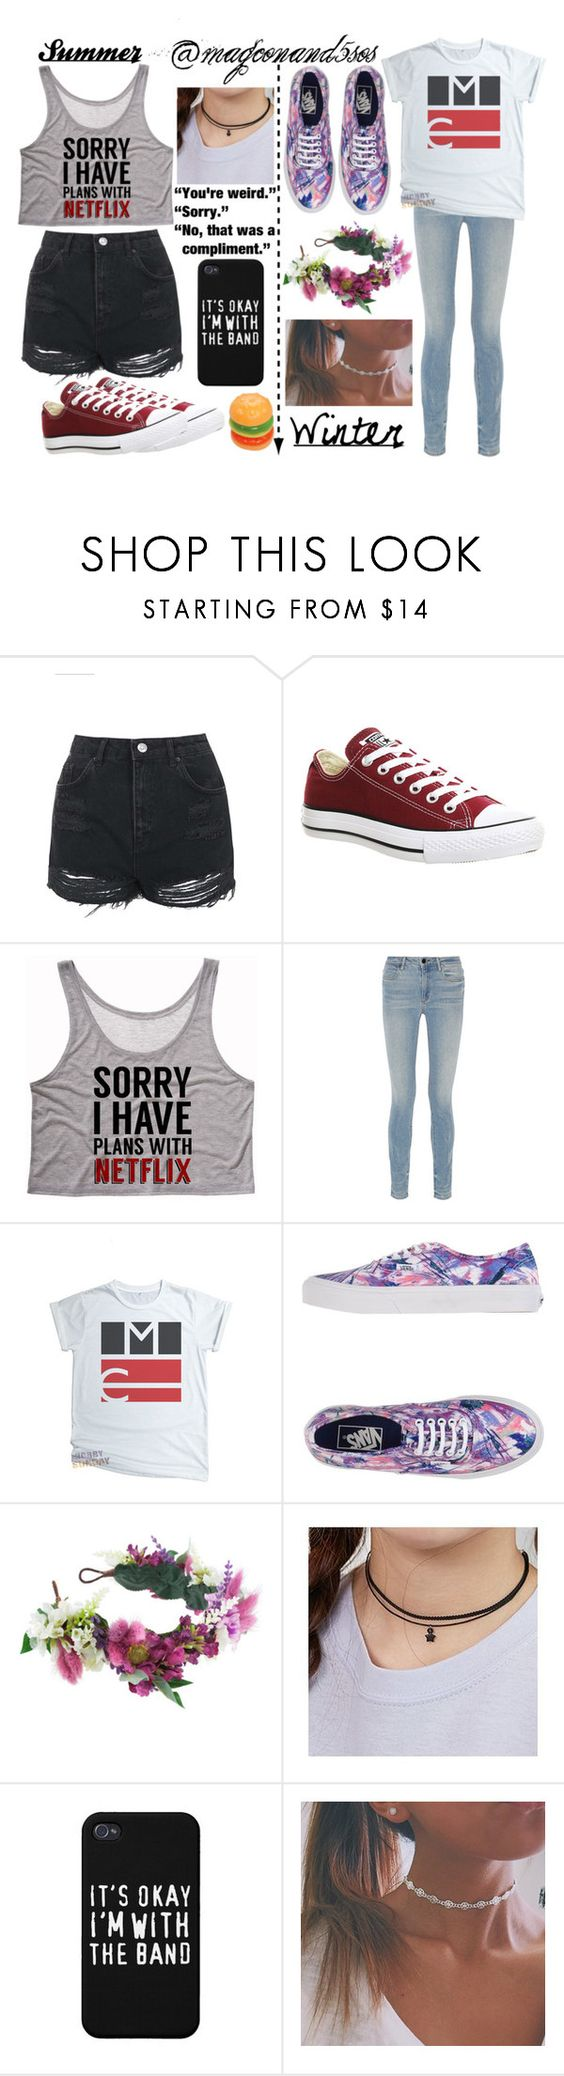 """For @magconand5sos!! Hope ya like it!!"" by kristinberchak ❤ liked on Polyvore featuring beauty, Topshop, Converse, Alexander Wang, Vans, Rock 'N Rose and FROMBEGINNING"